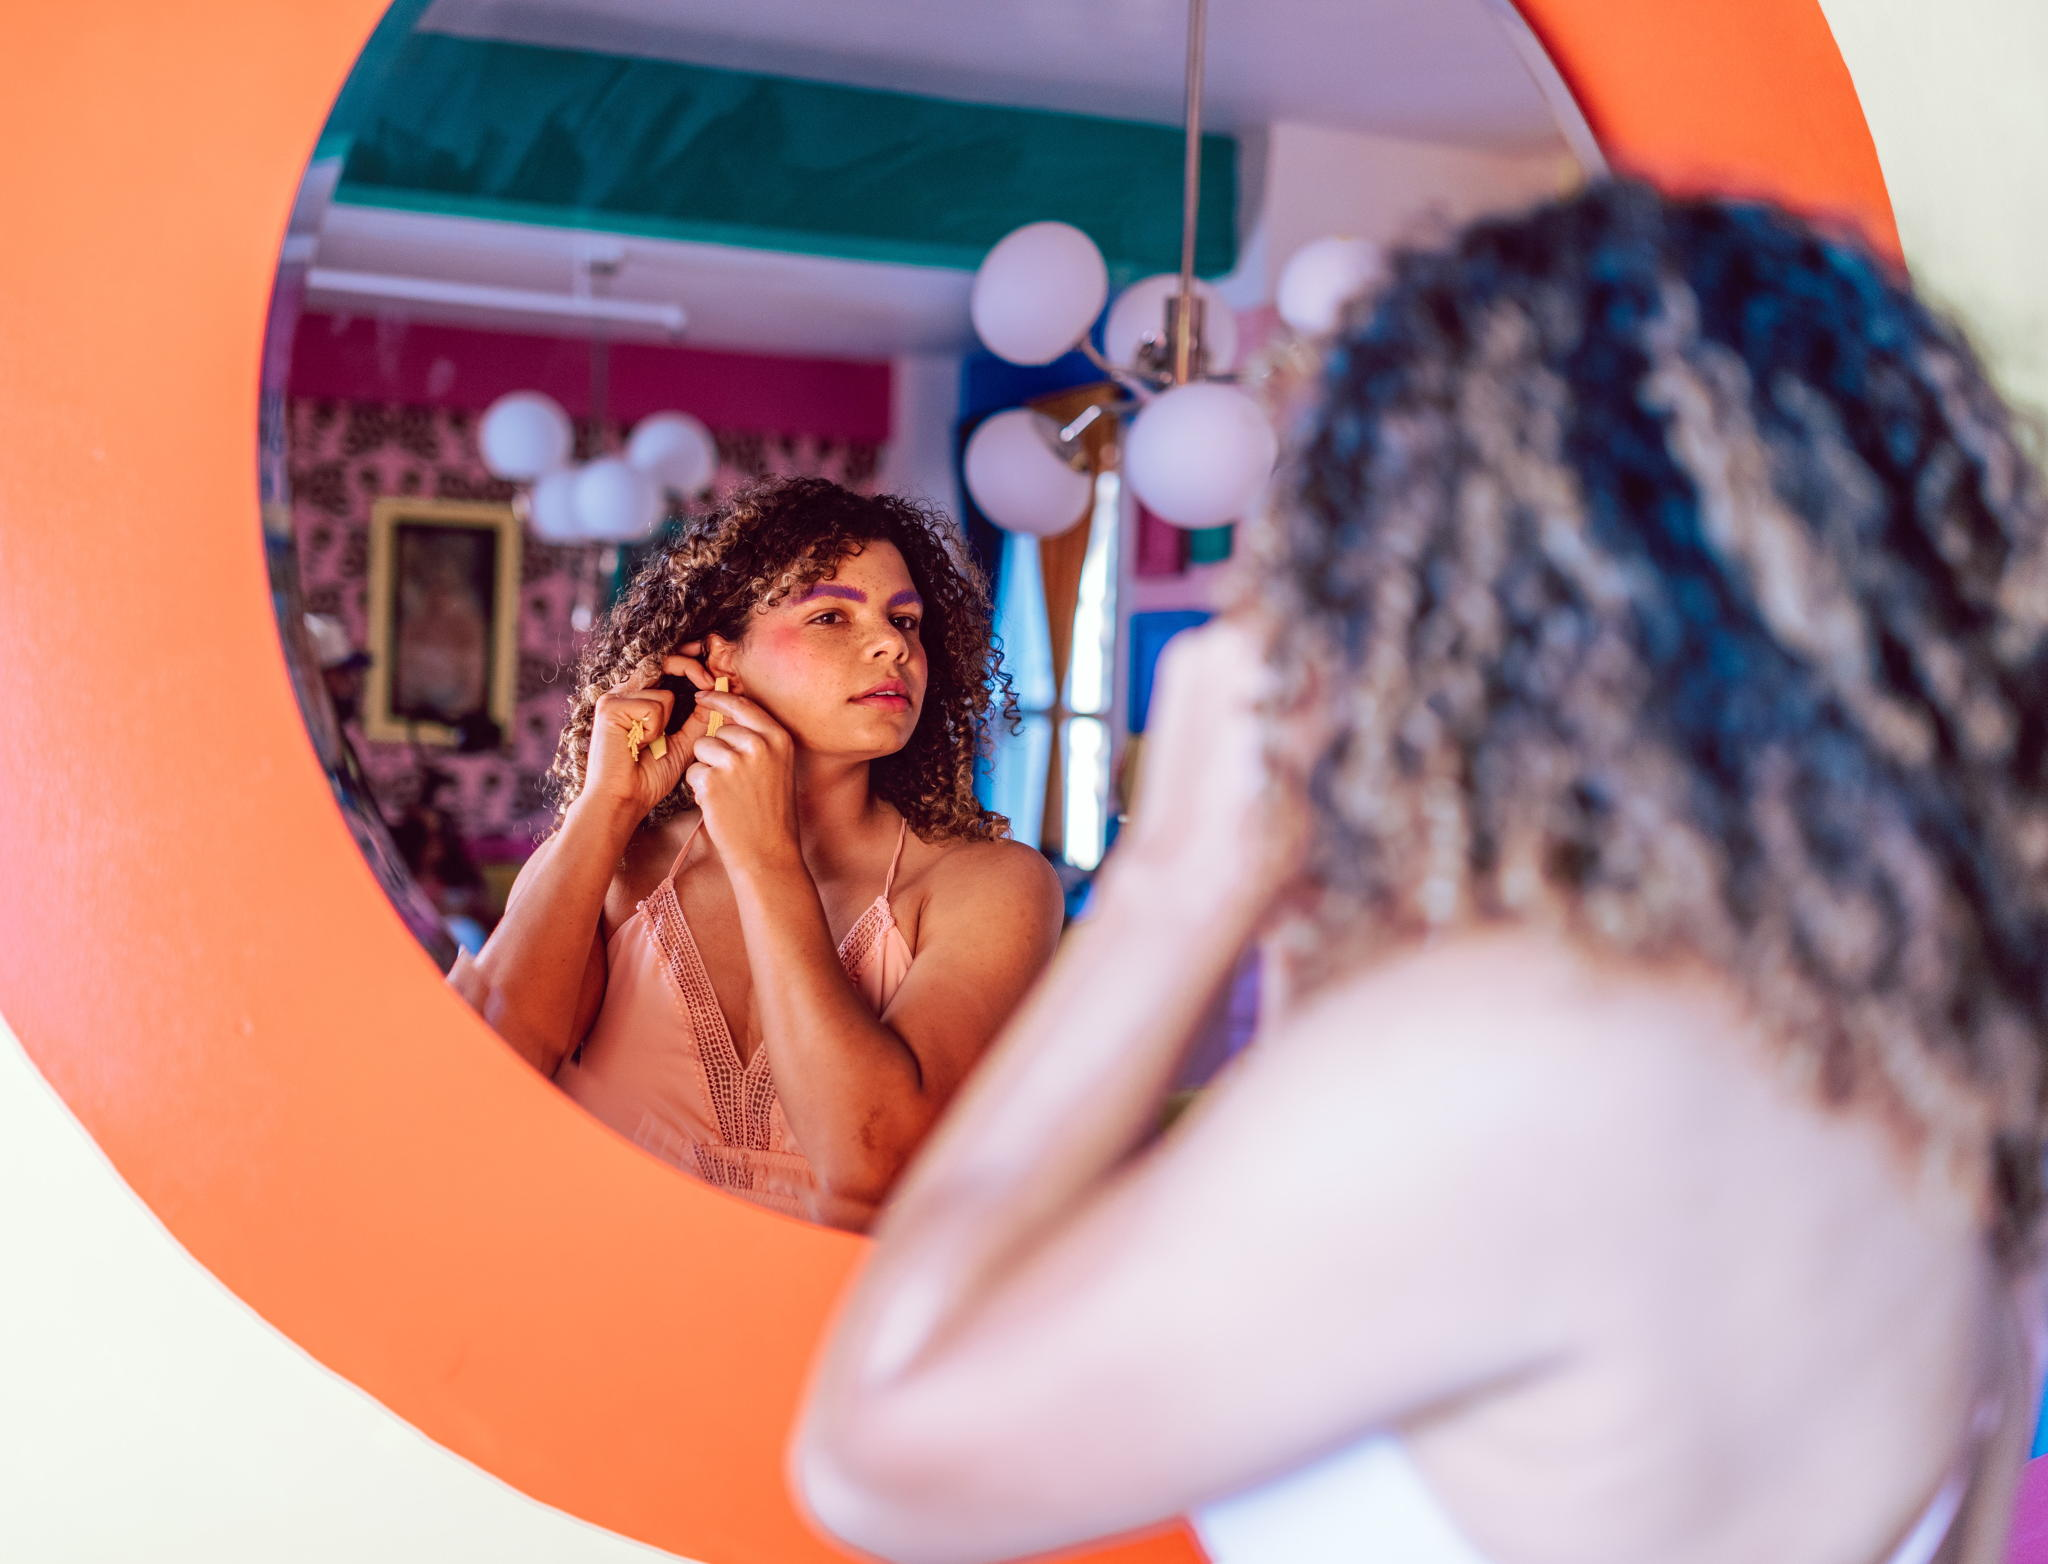 A beautiful mixed woman with curly hair looks at herself in the mirror while putting on an earring.